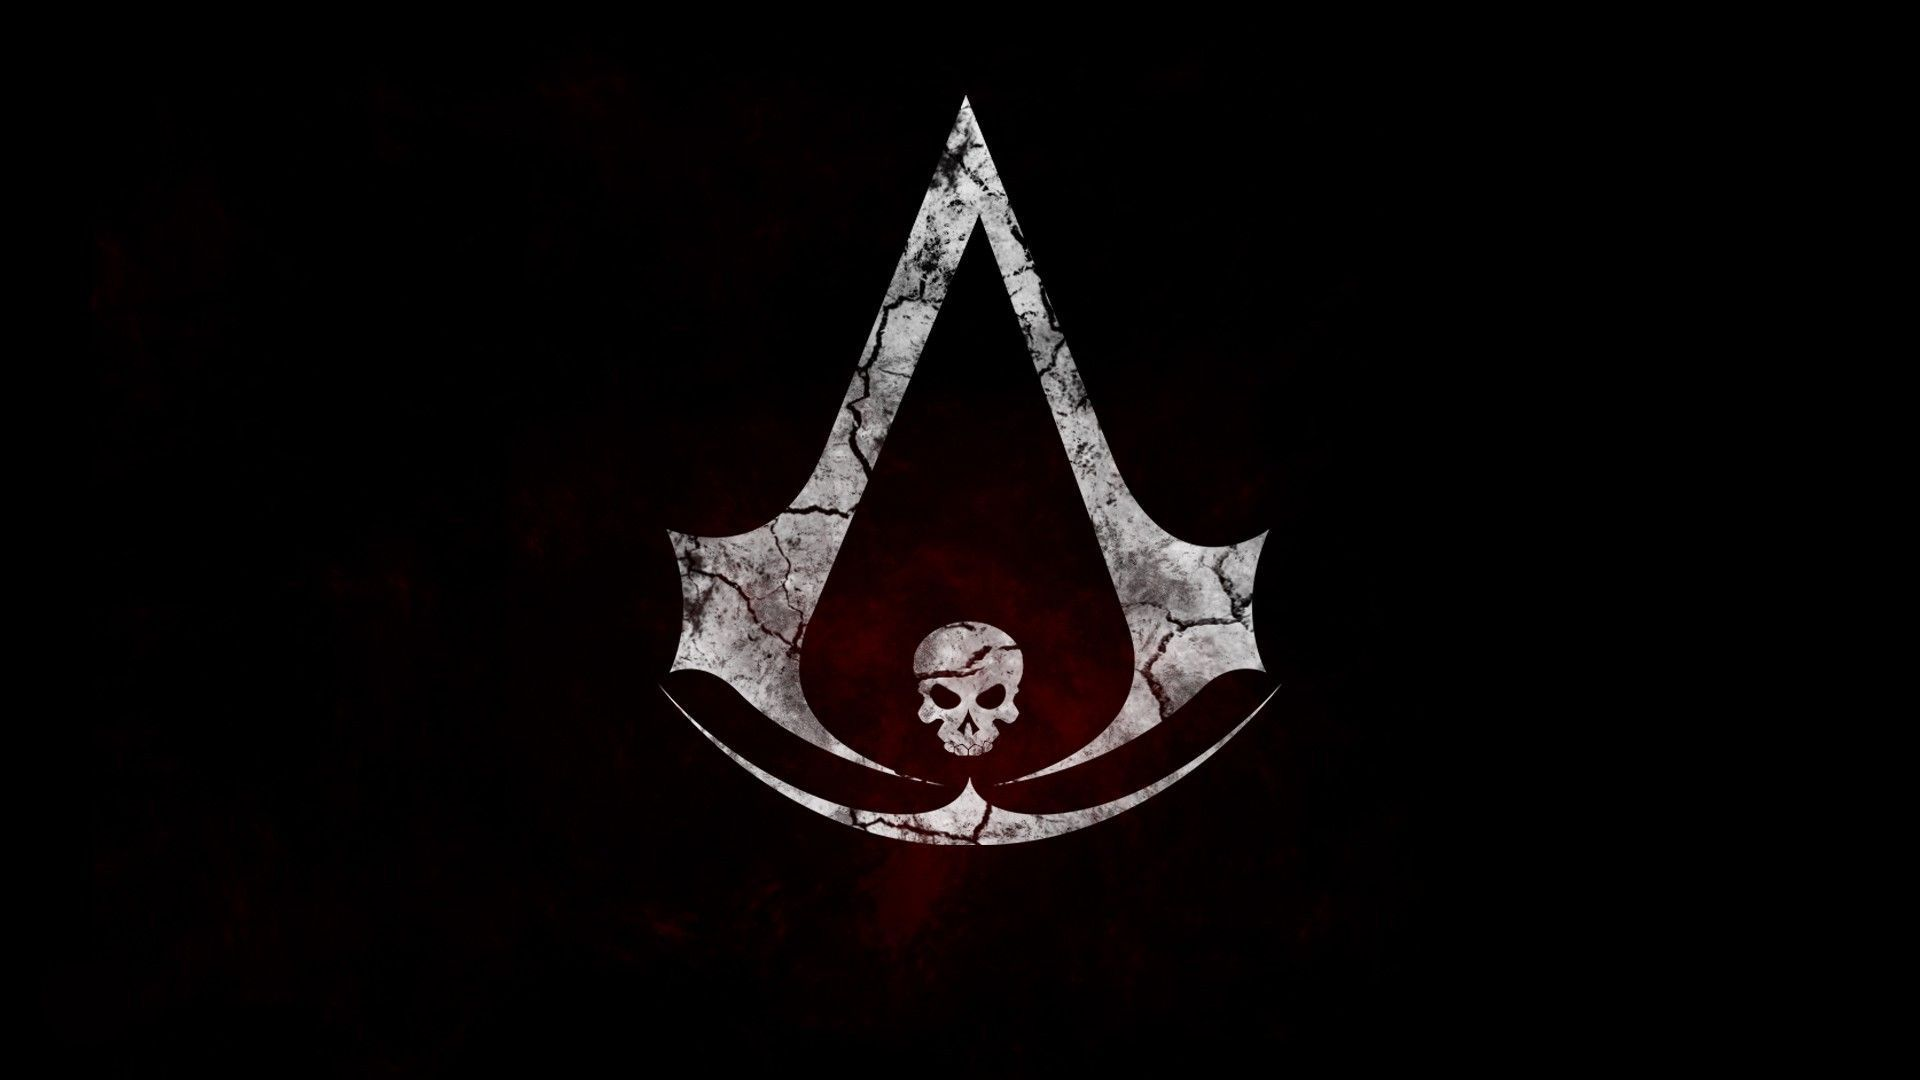 Free Download Assassins Creed Iv Black Flag Wallpaper For Desktop